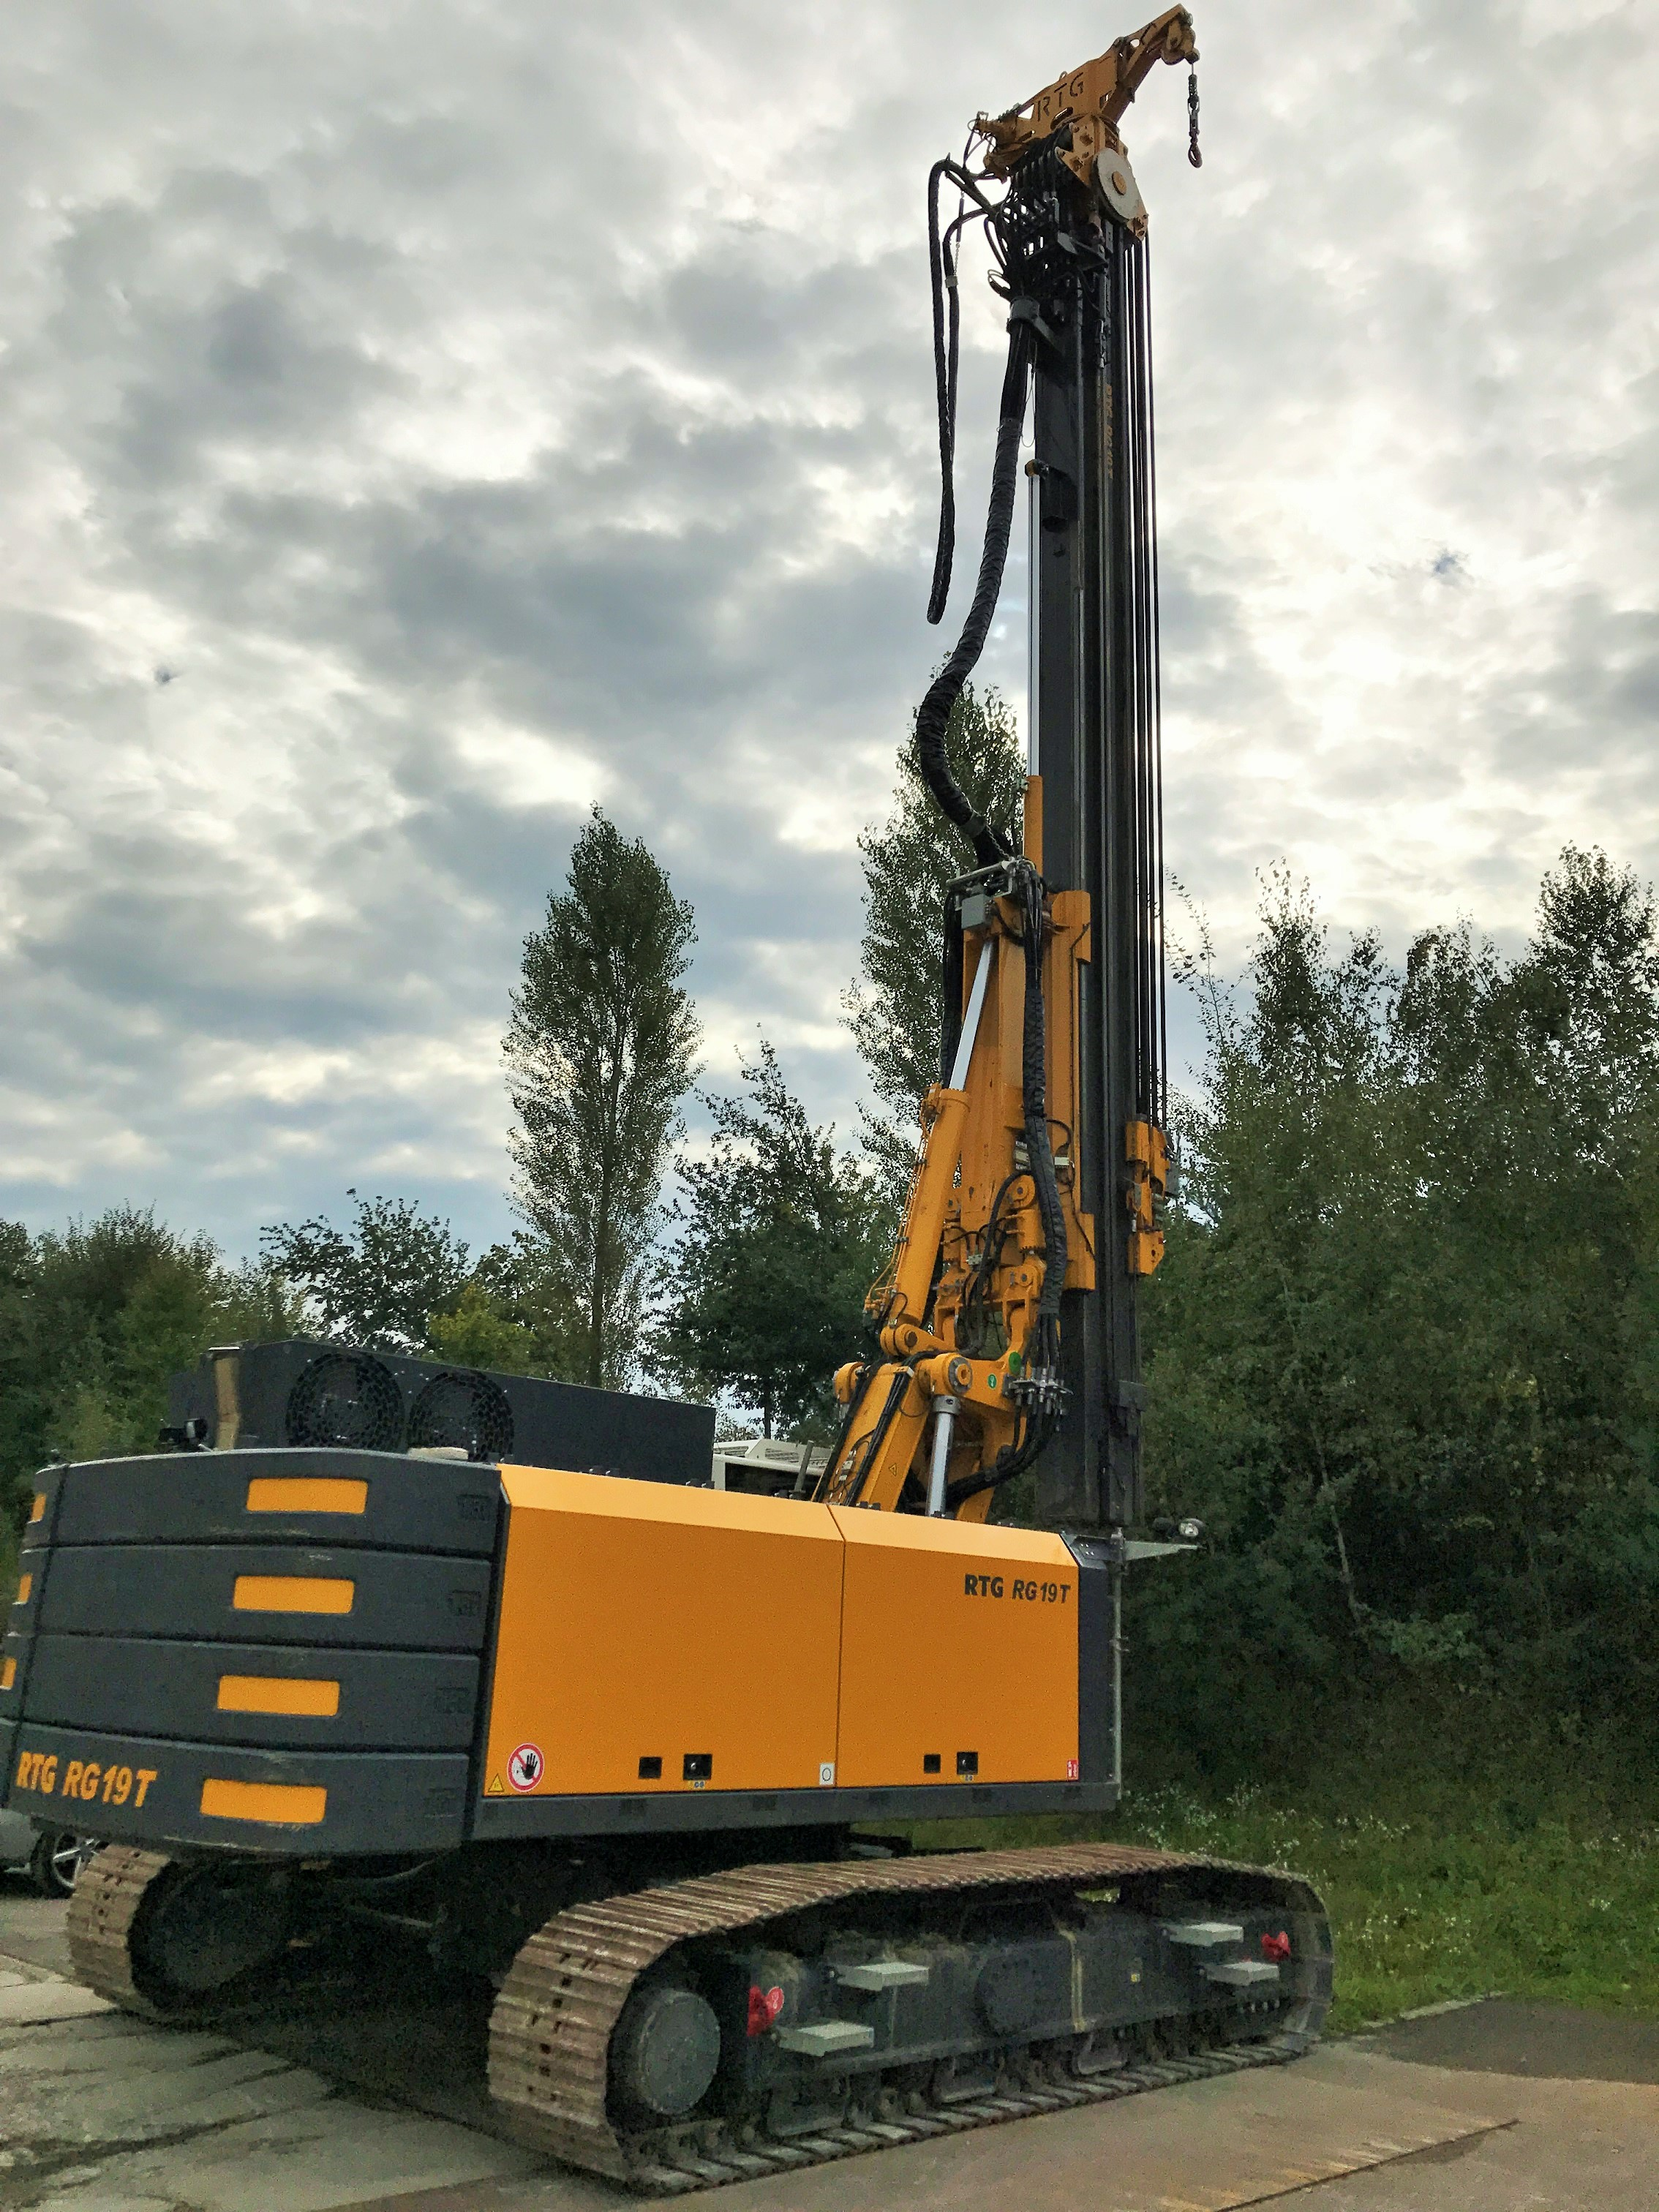 Used RTG RG19T telescopic leader rig for sale